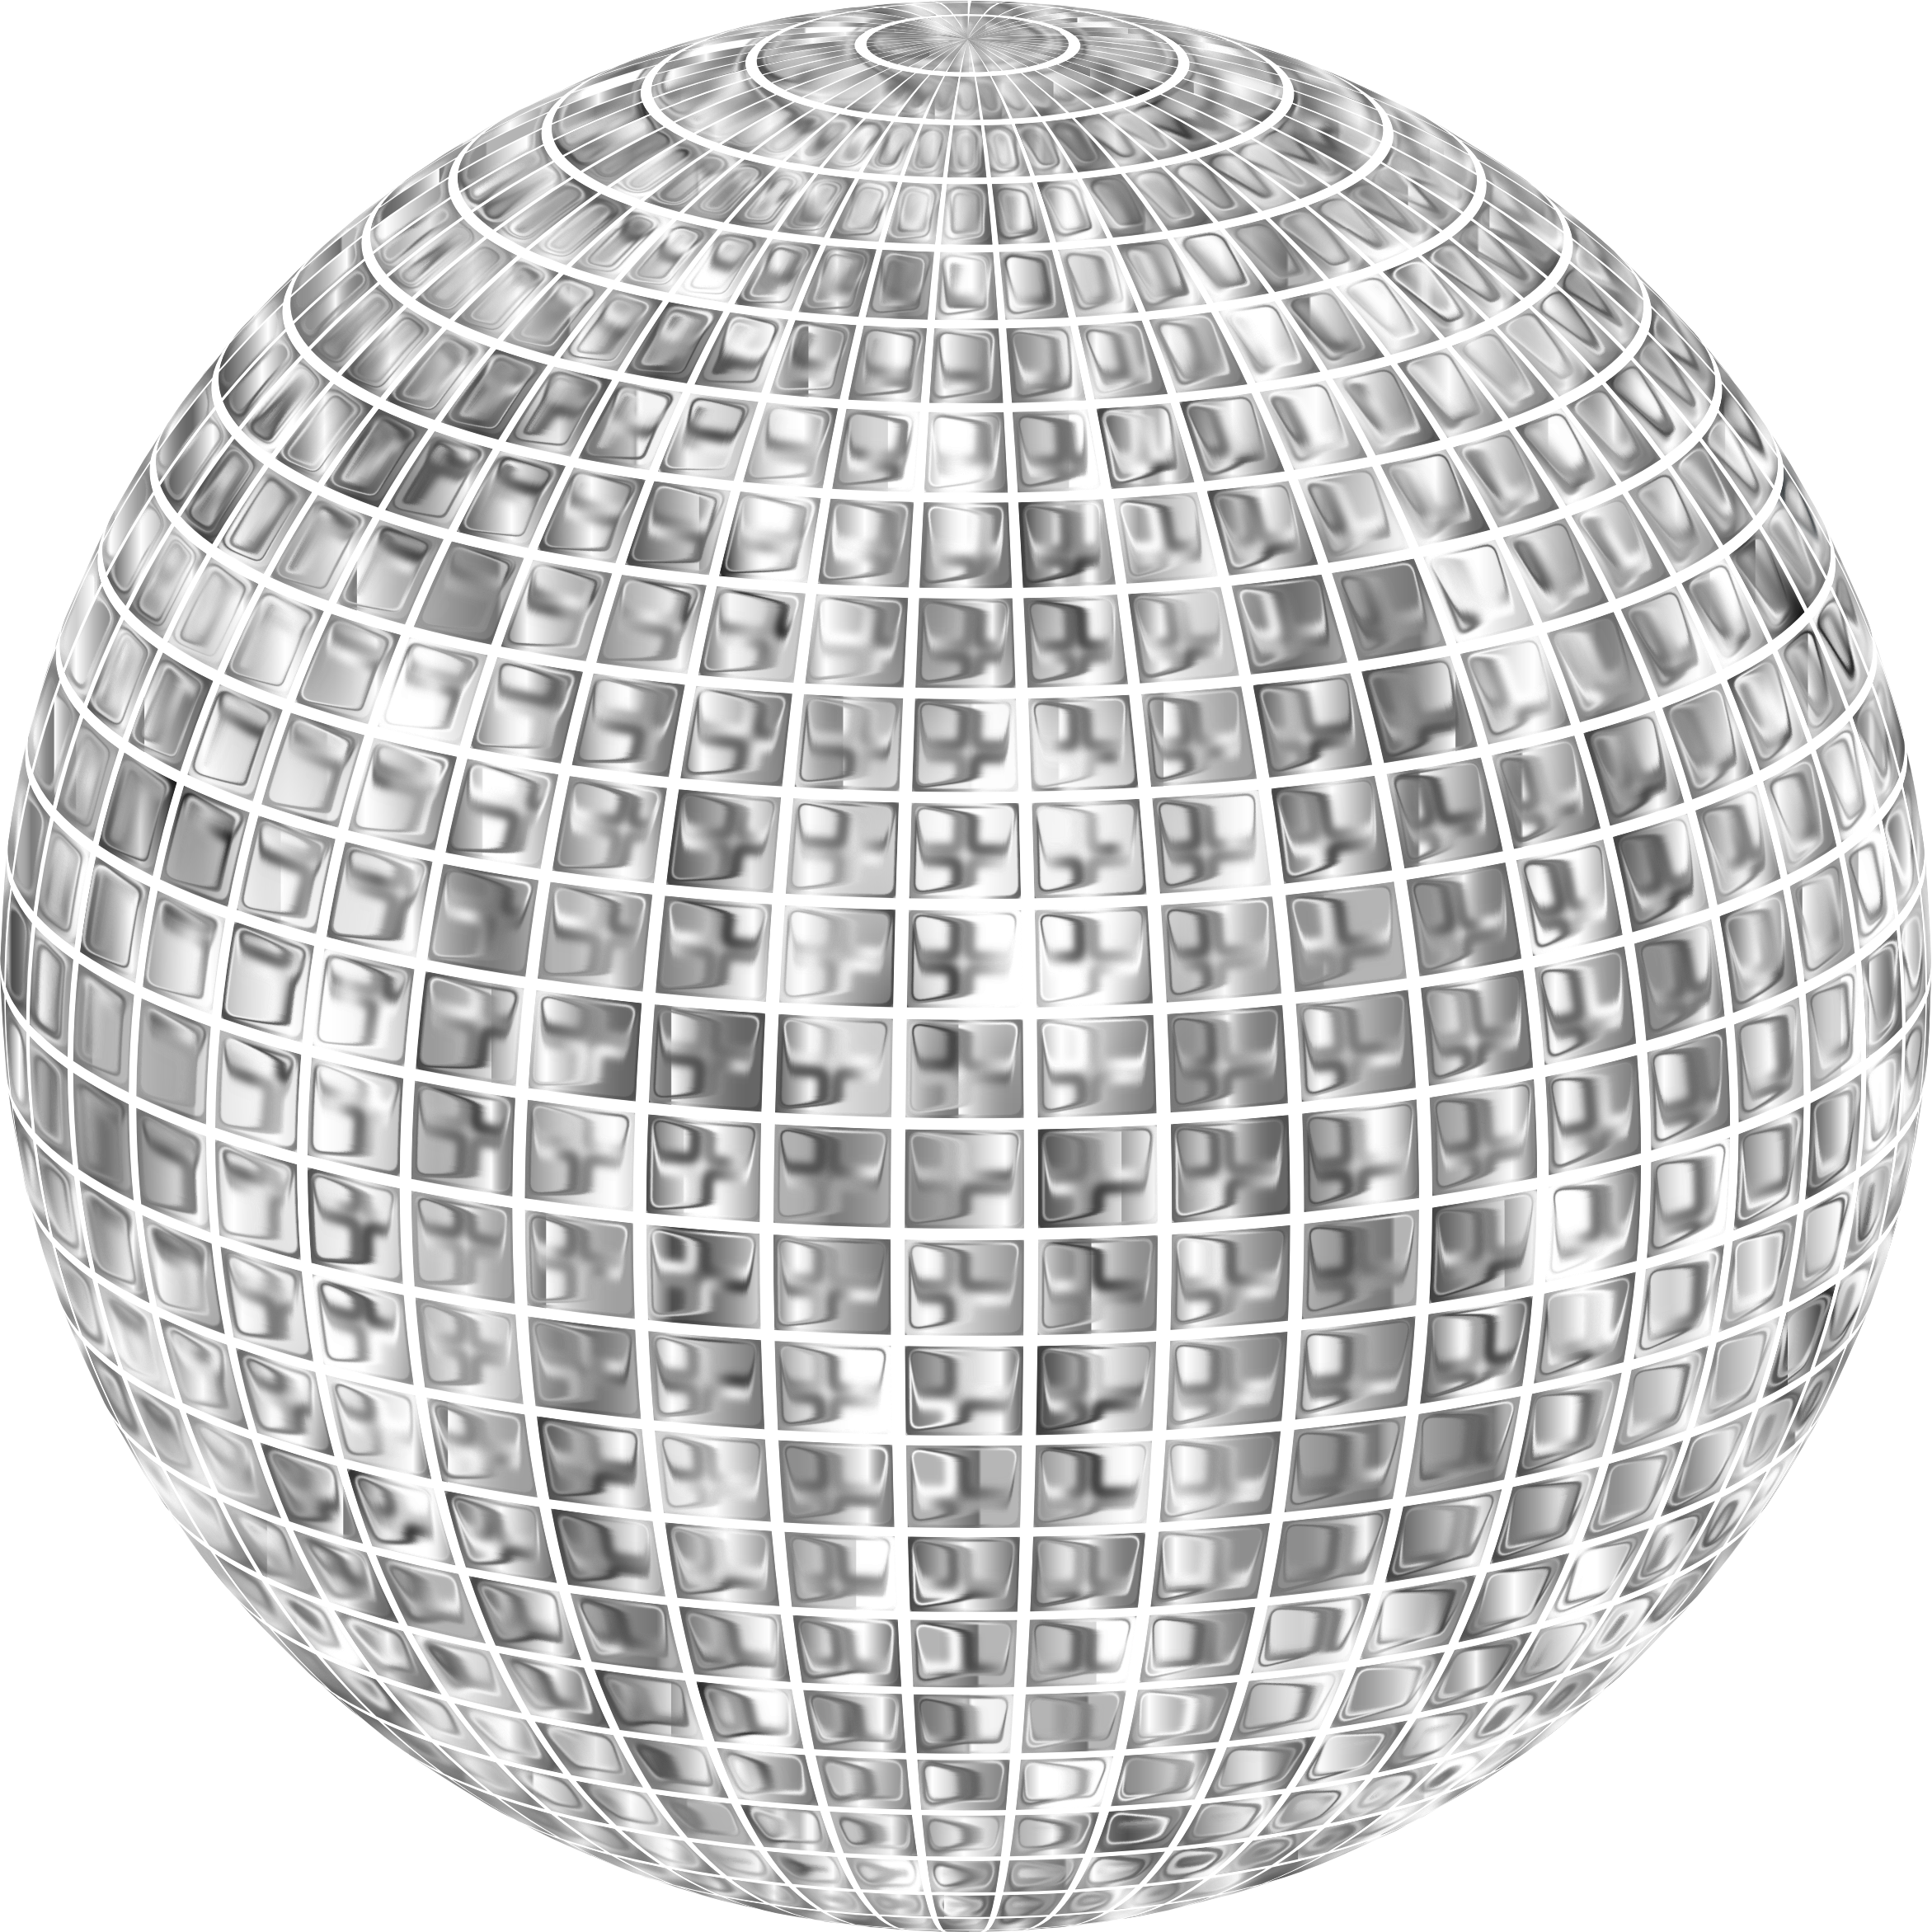 Glimmering Disco Ball Enhanced No Background by GDJ